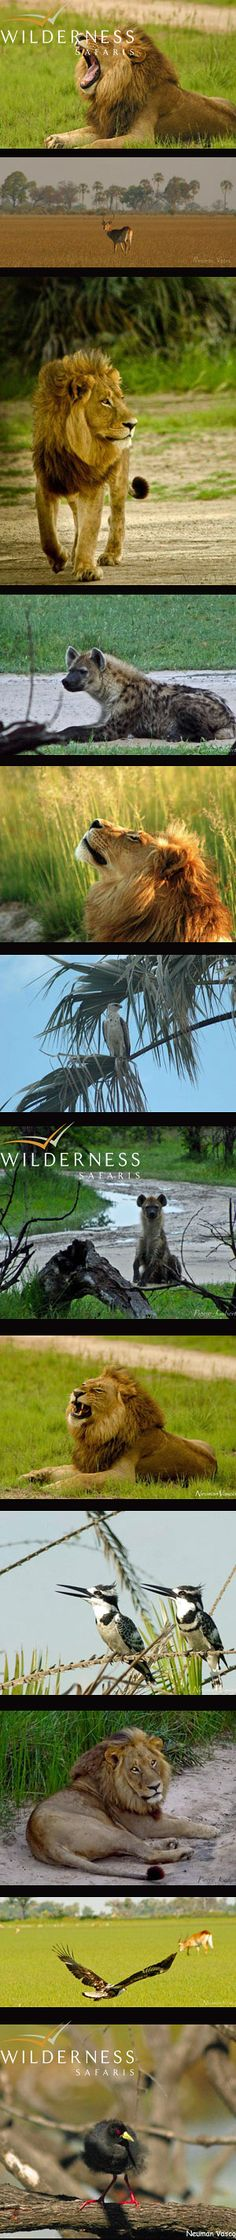 Jao Camp -One shy leopard and one not so shy...Click on the image for the full story.